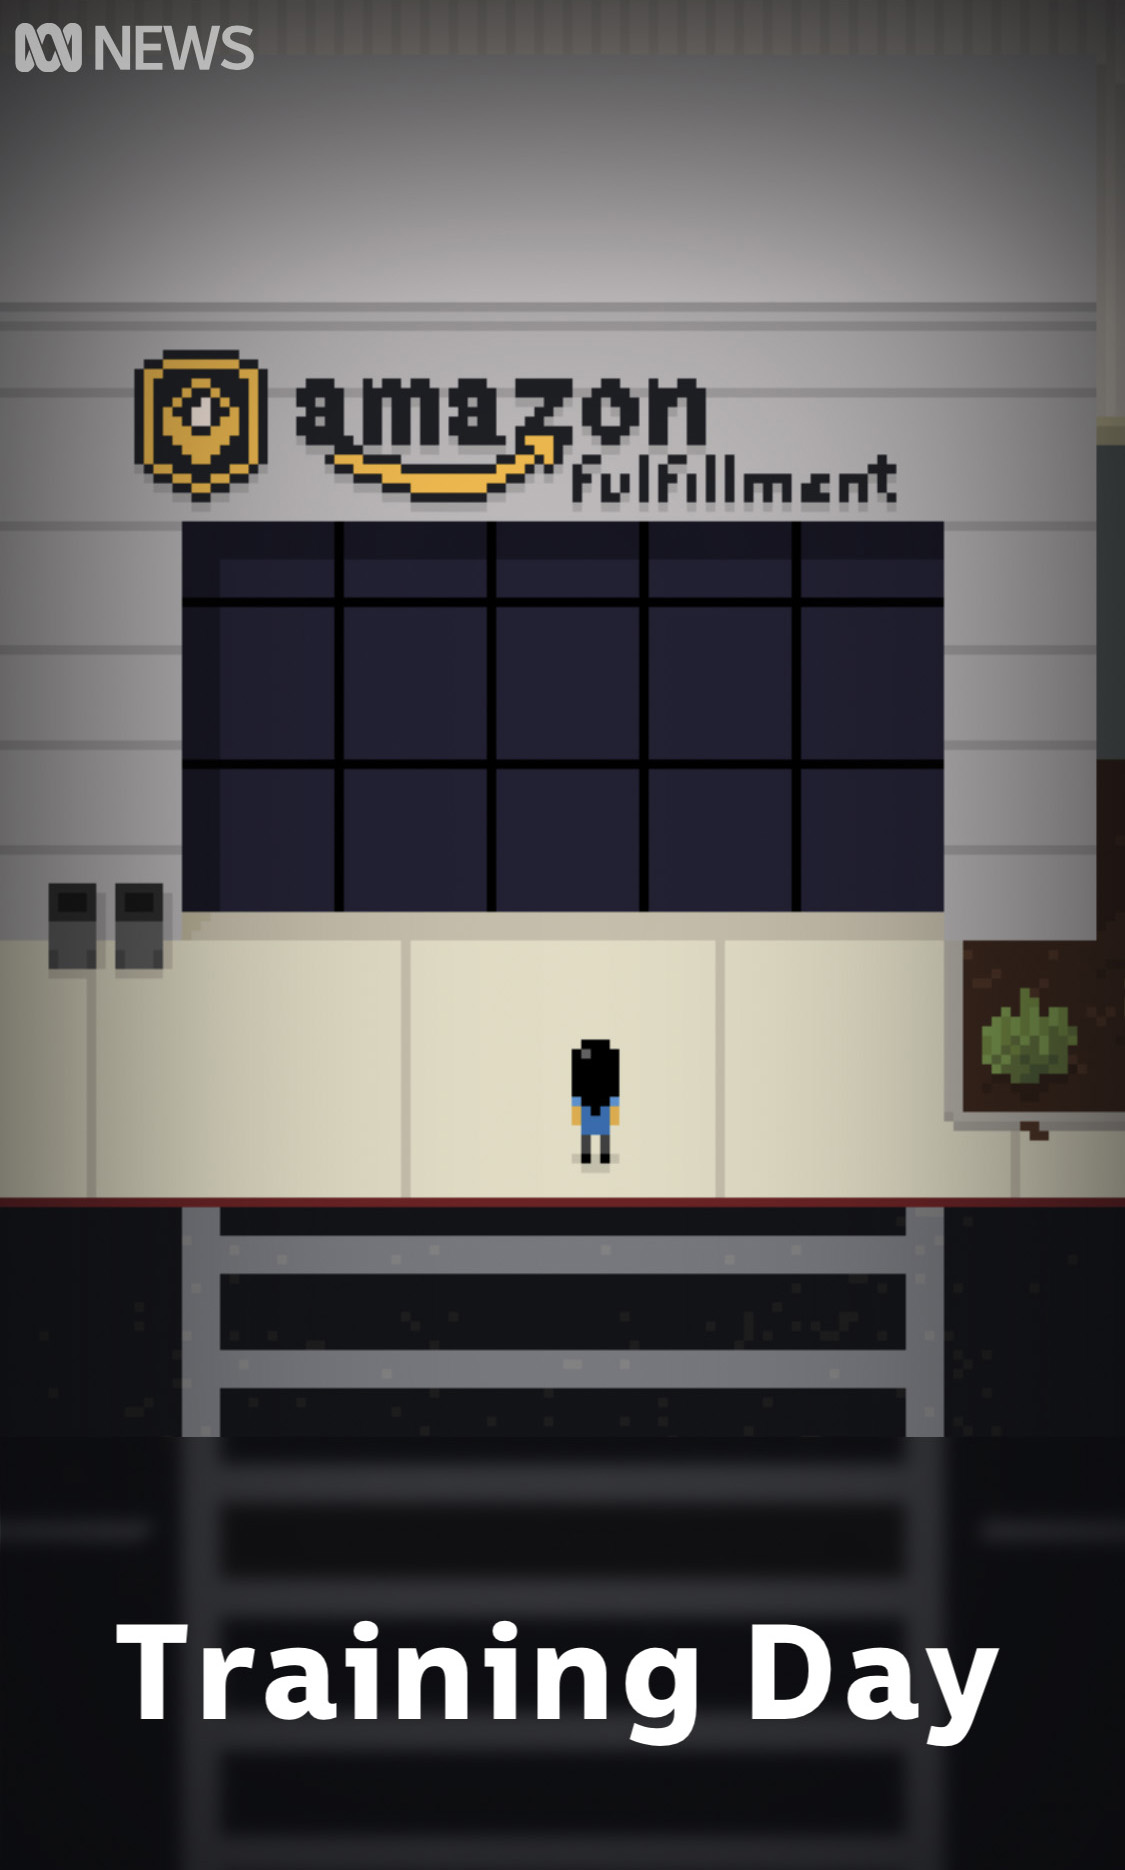 Experience what it is like to work in an Amazon warehouse